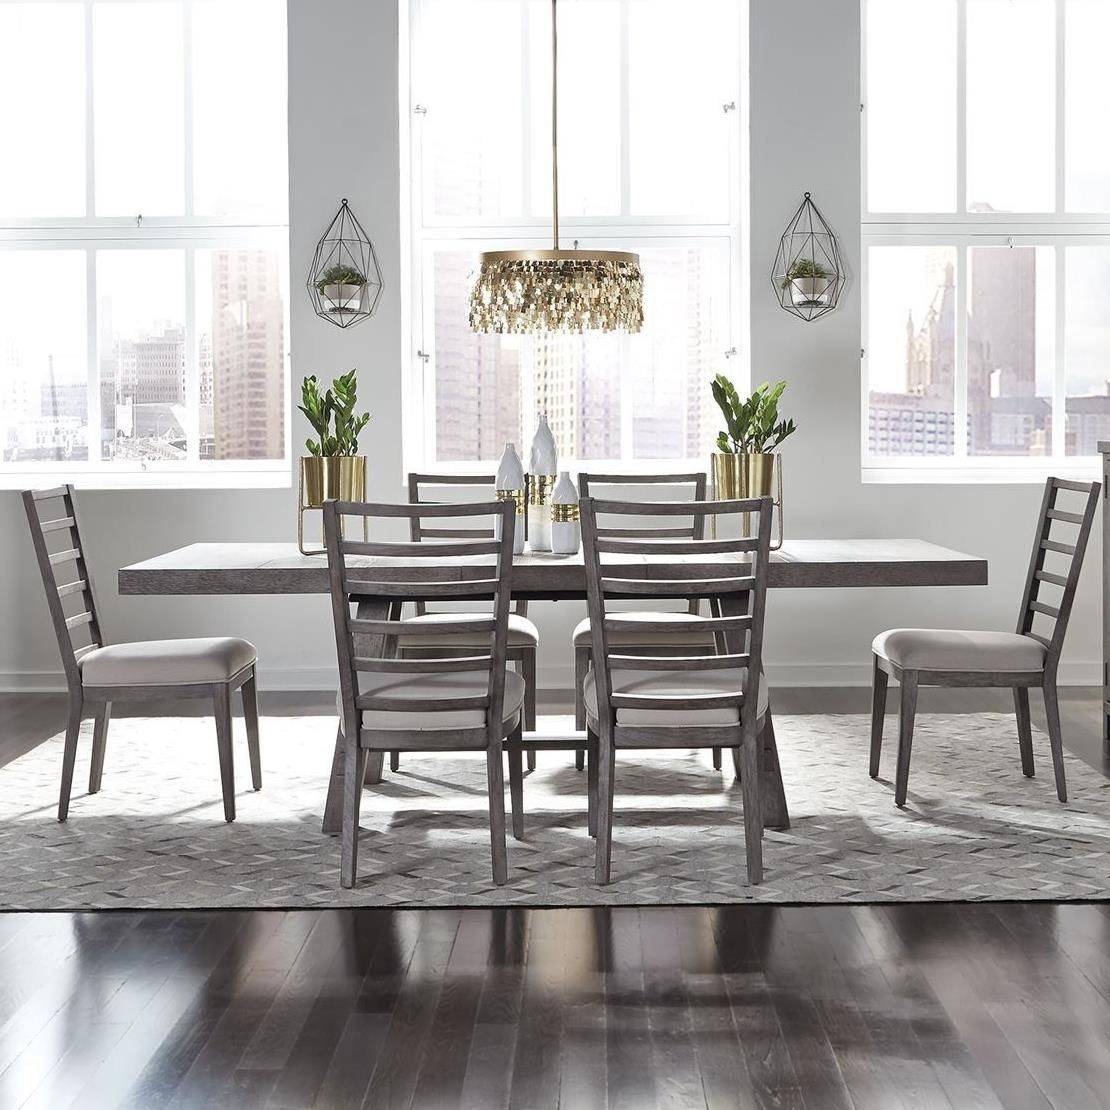 Modern Farmhouse 7-Piece Trestle Table and Chair Set by Liberty Furniture at Upper Room Home Furnishings